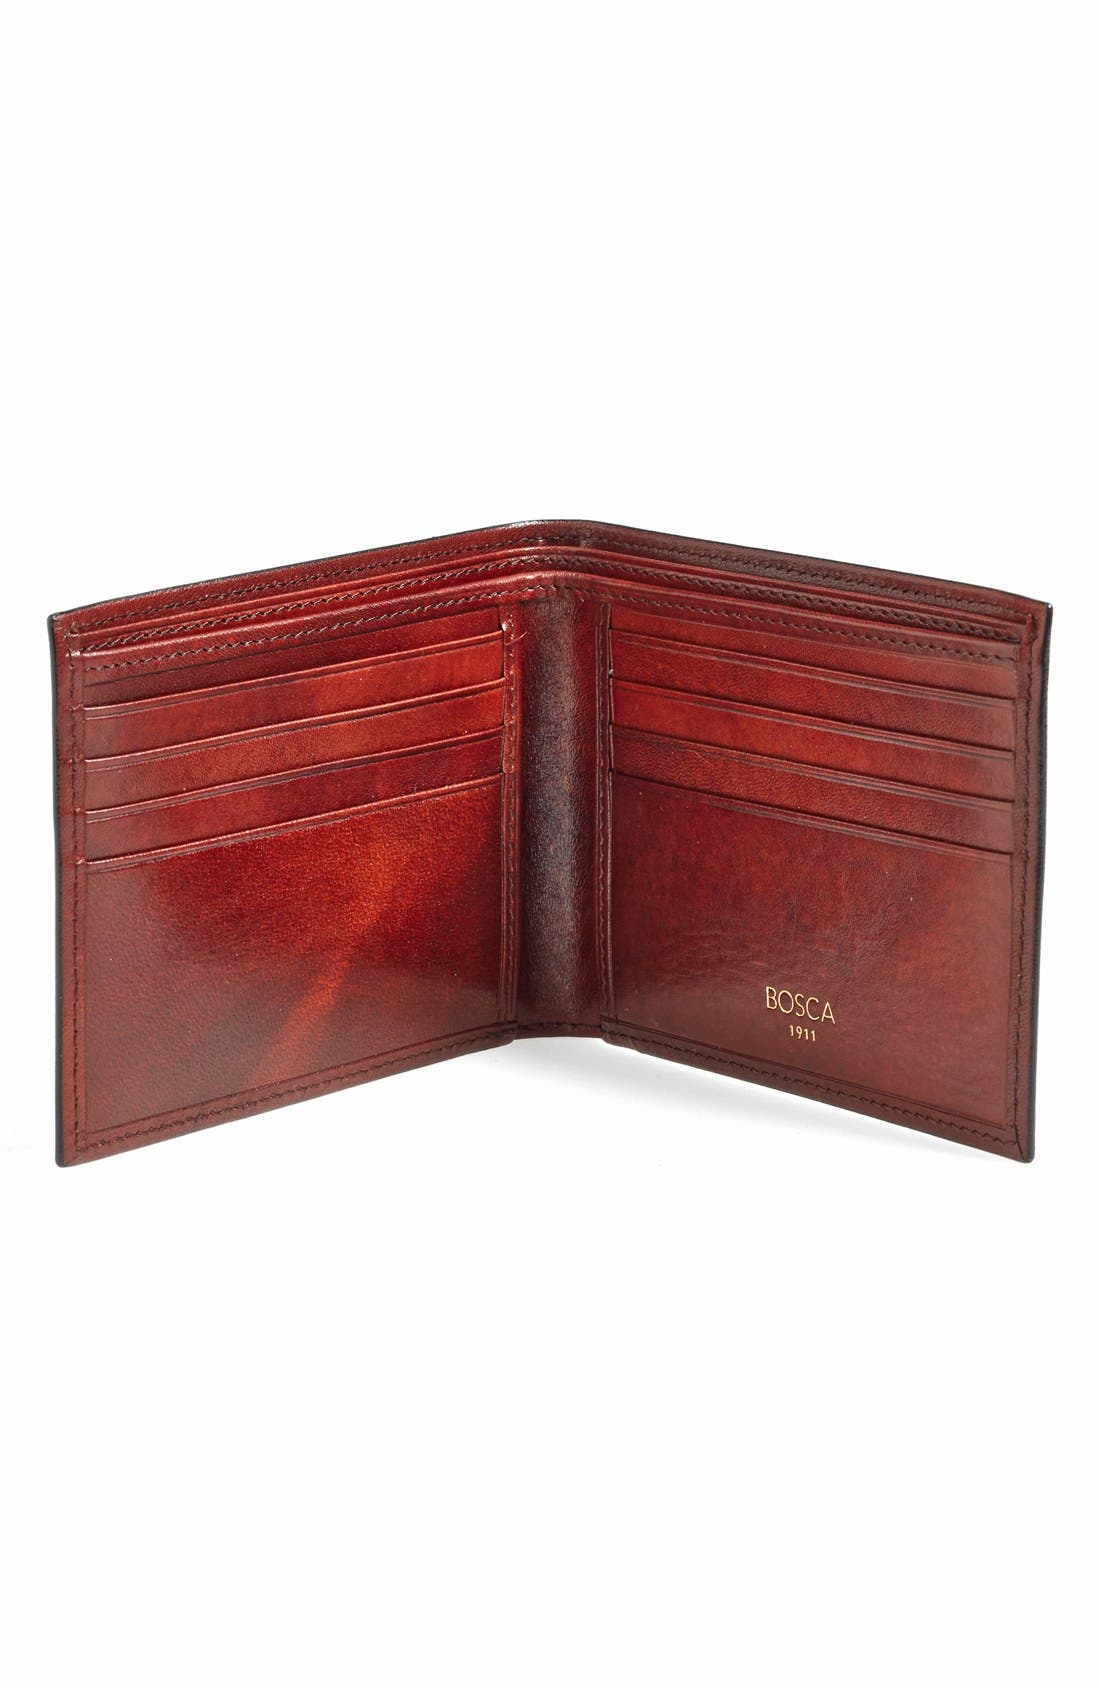 'Old Leather' Deluxe Wallet,                             Alternate thumbnail 2, color,                             Dark Brown